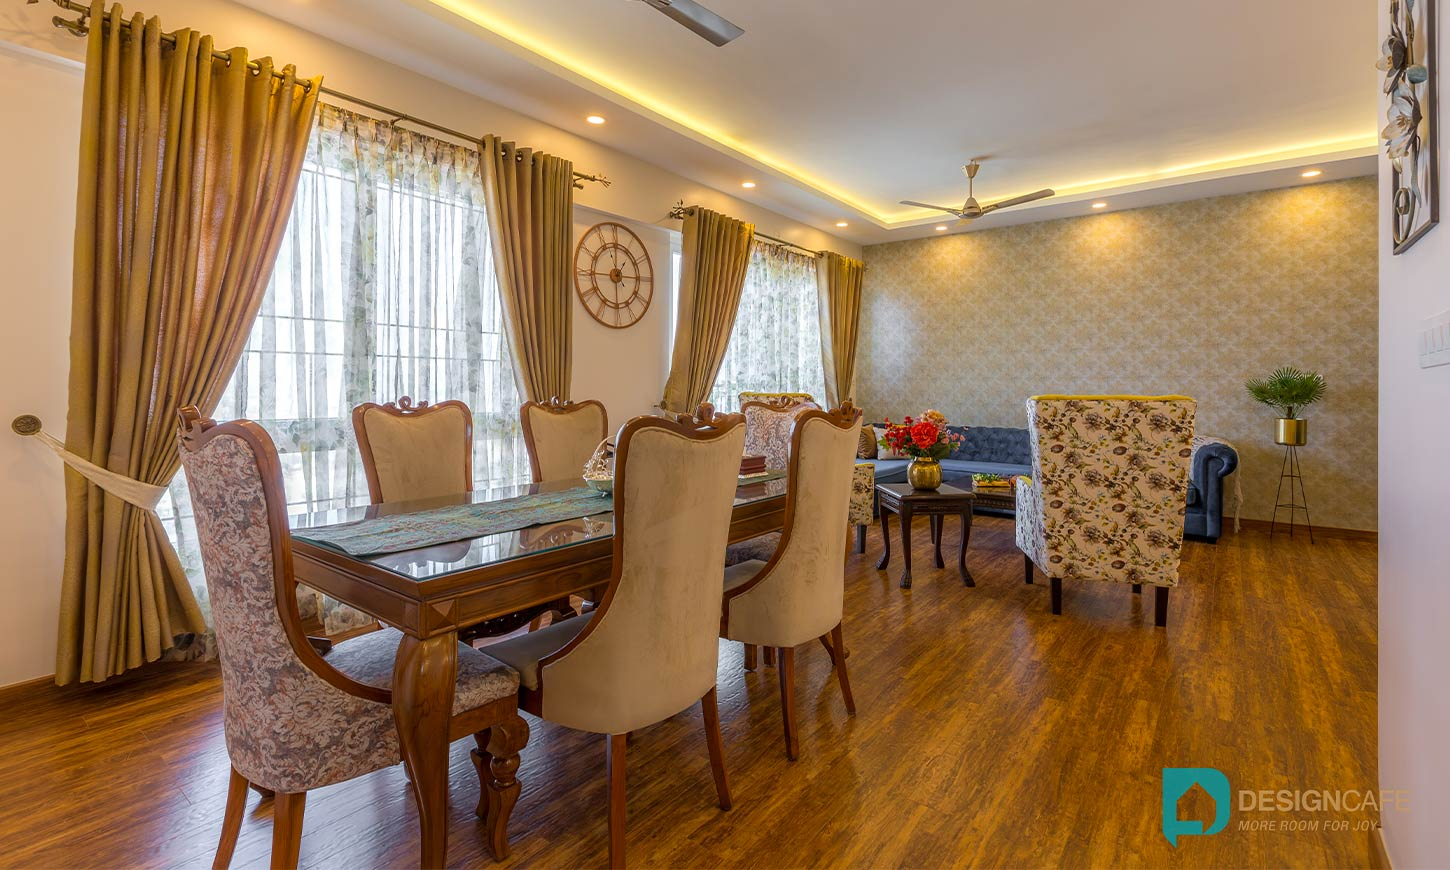 Dining area designed by best residential interior designers in bangalore